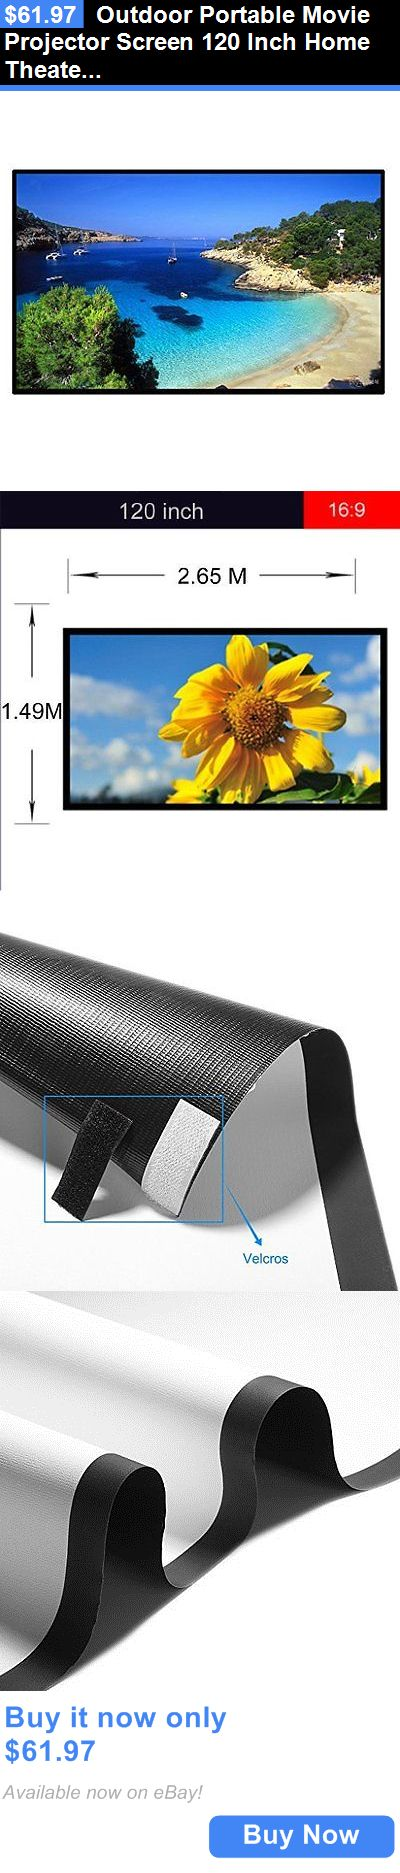 Projection Screens and Material: Outdoor Portable Movie Projector Screen 120 Inch Home Theater Movie Cinema 120 BUY IT NOW ONLY: $61.97